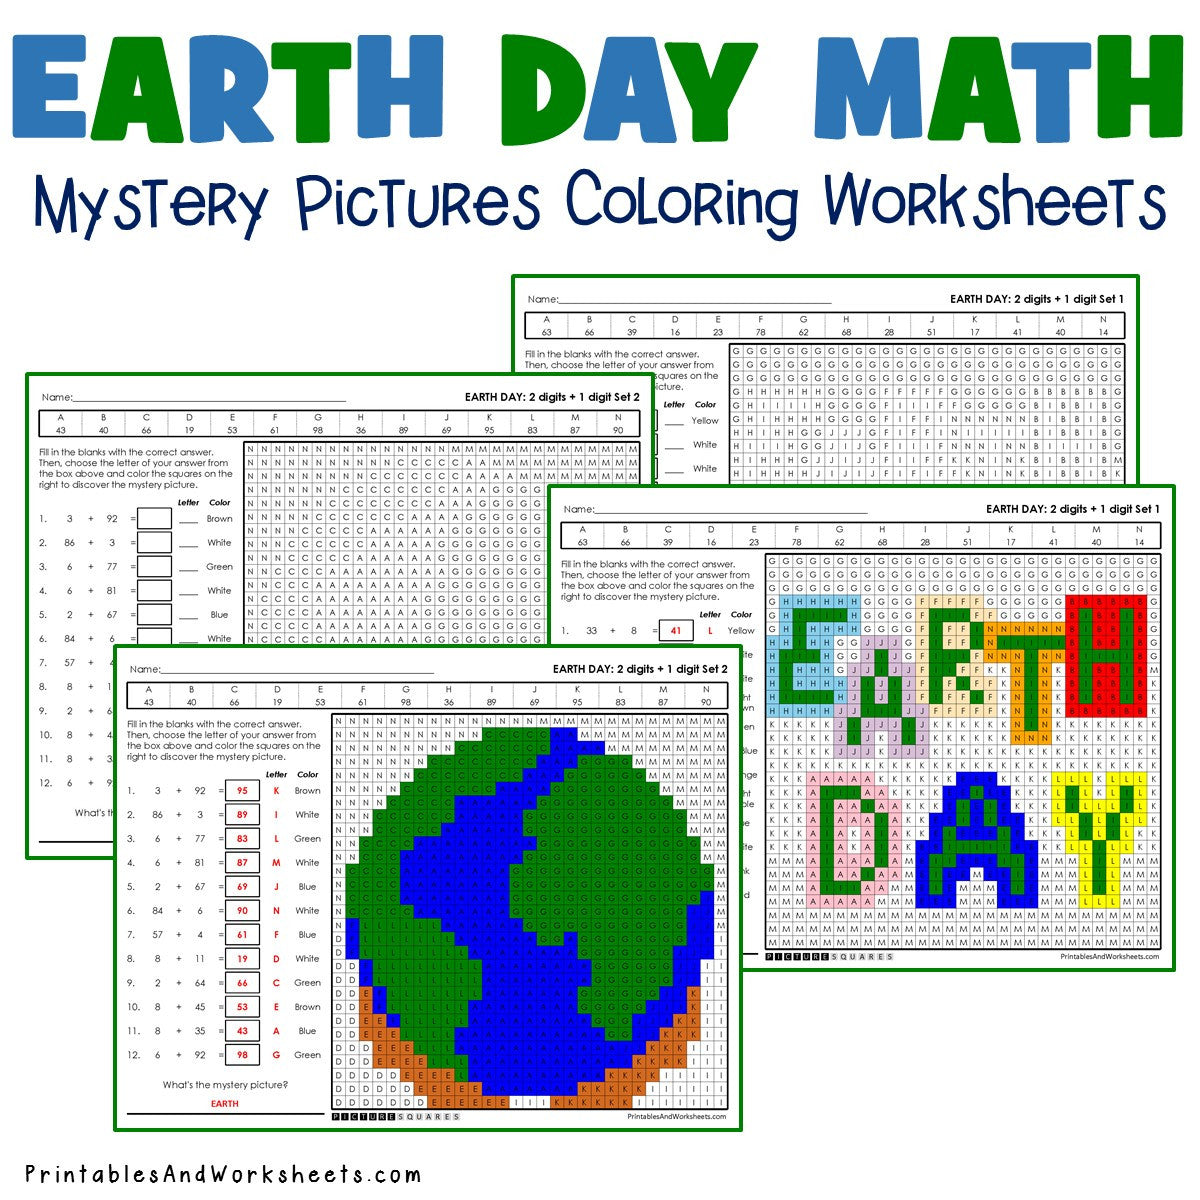 Earth Day Coloring Worksheets - Addition